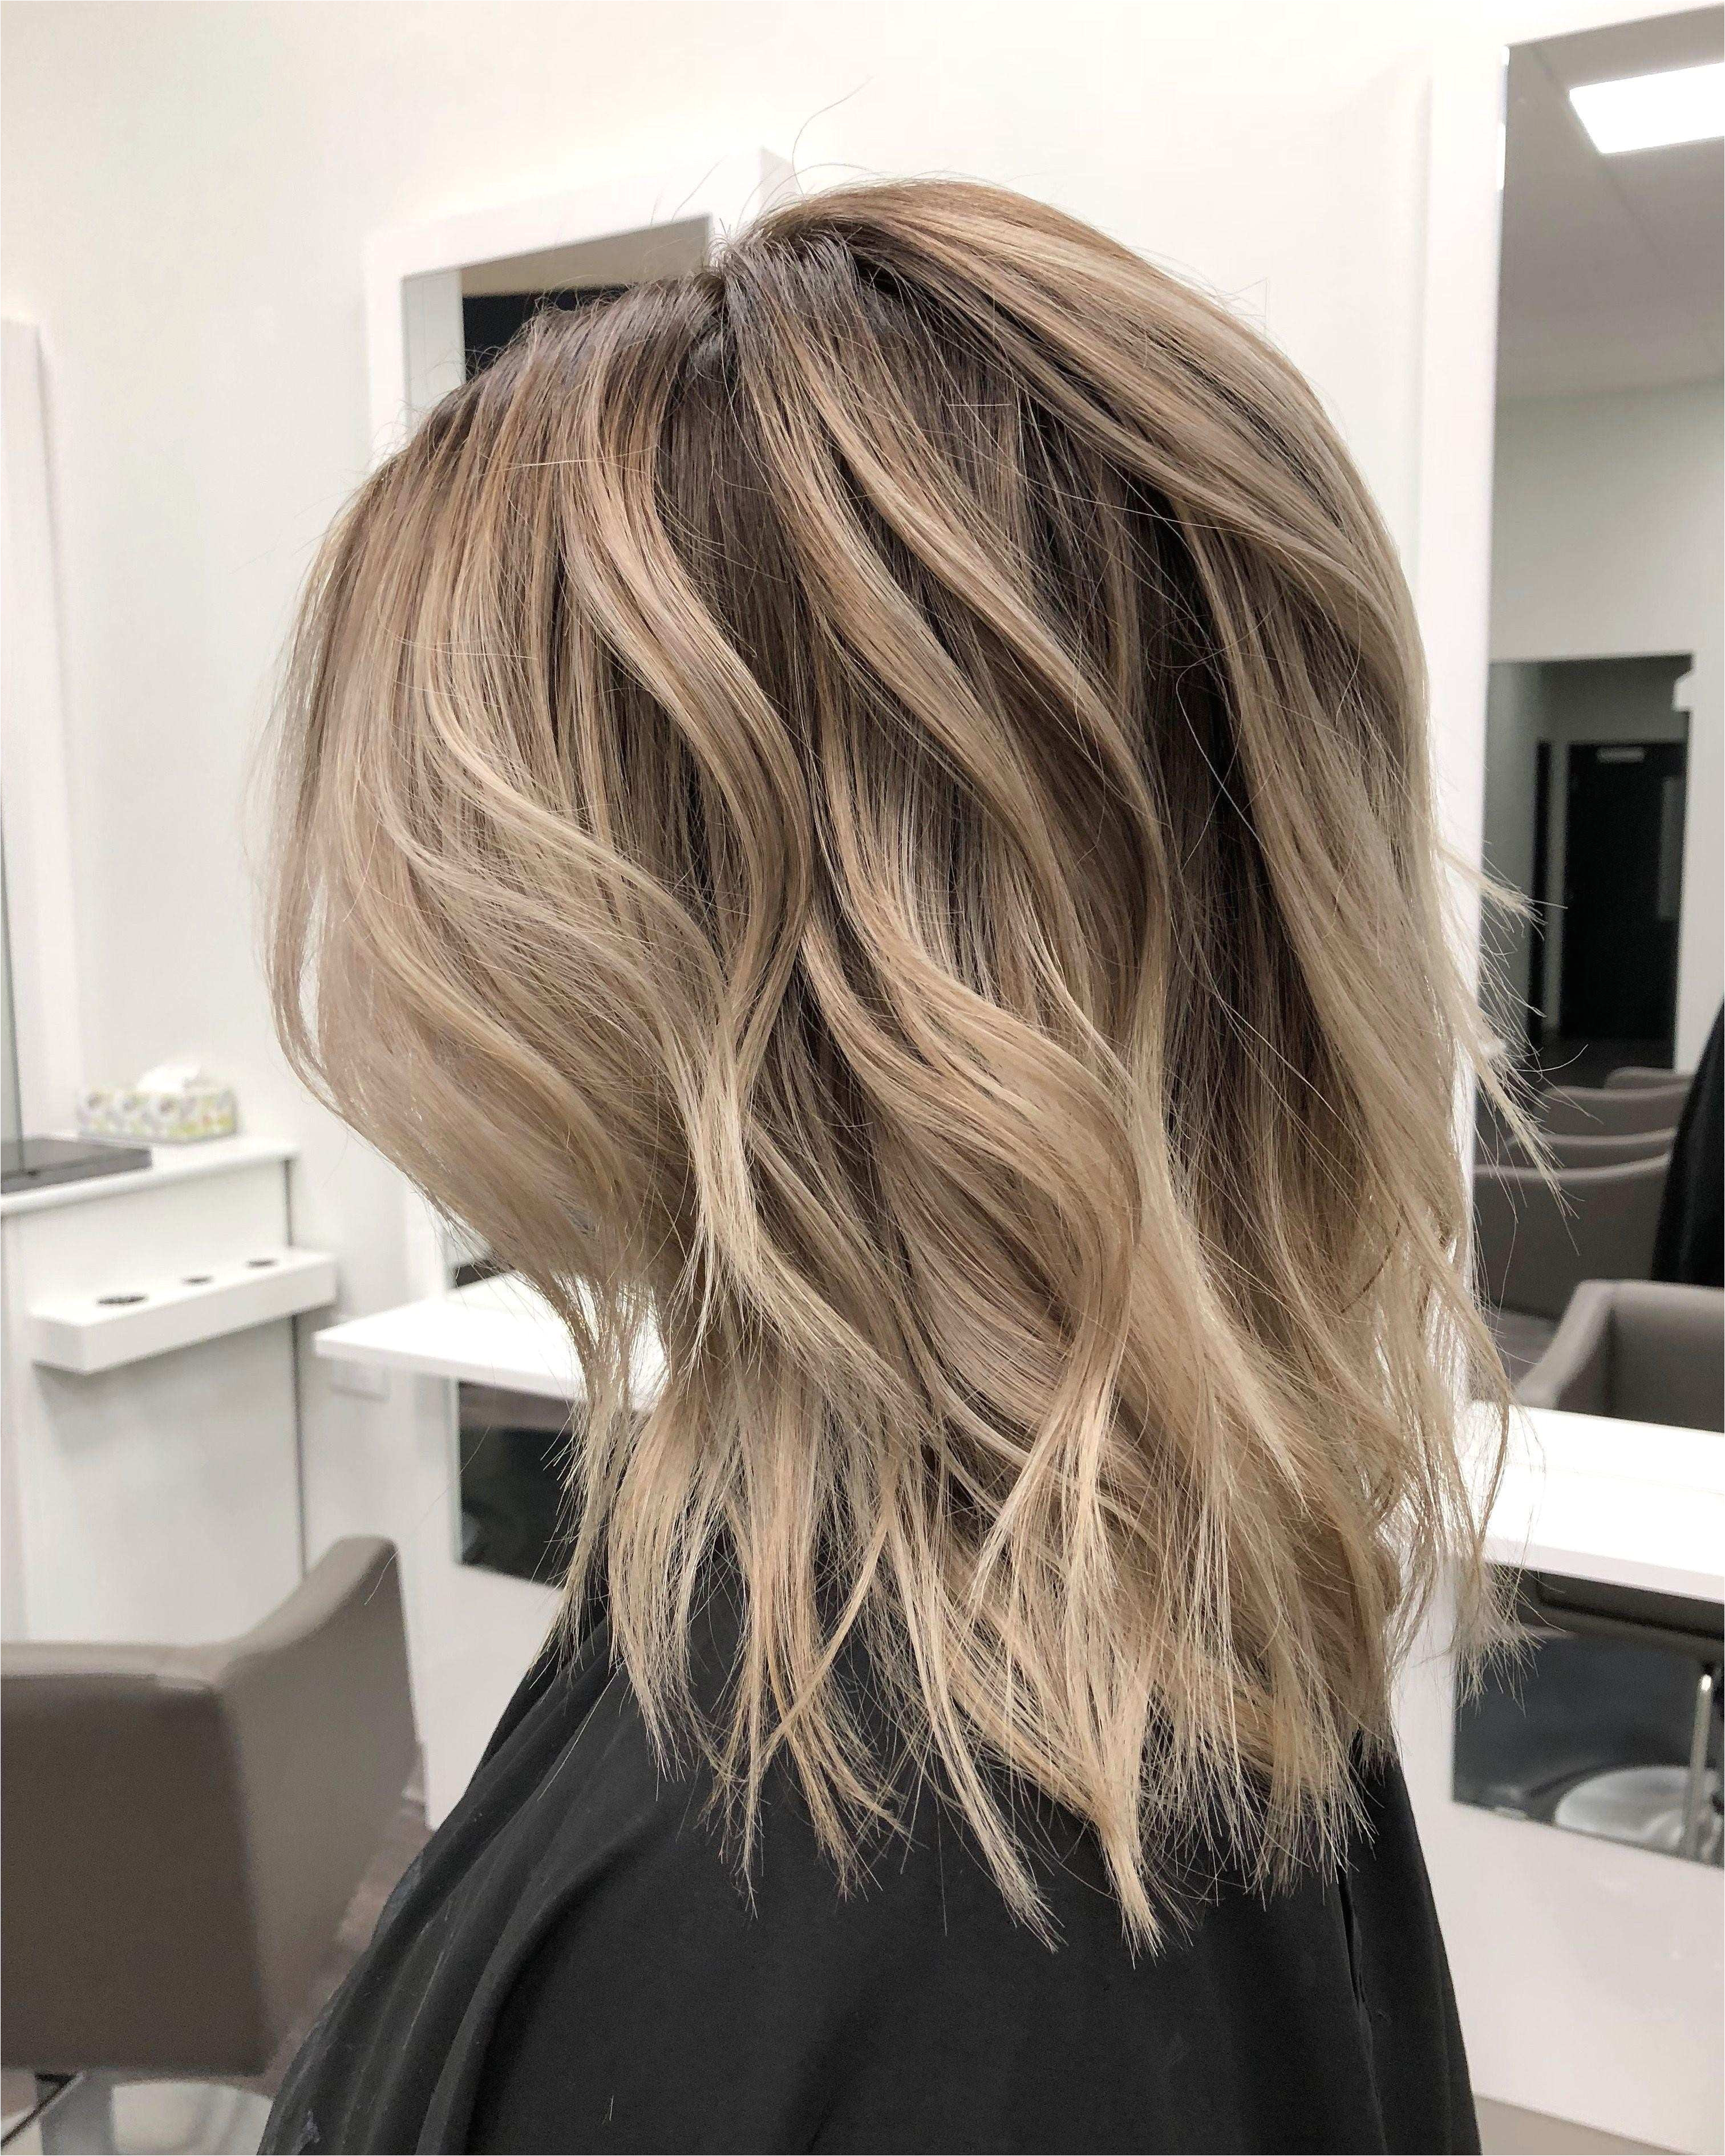 Easy Hairstyles For Girls To Do At Home Lovely Inspirational How To Make A Simple Hairstyle